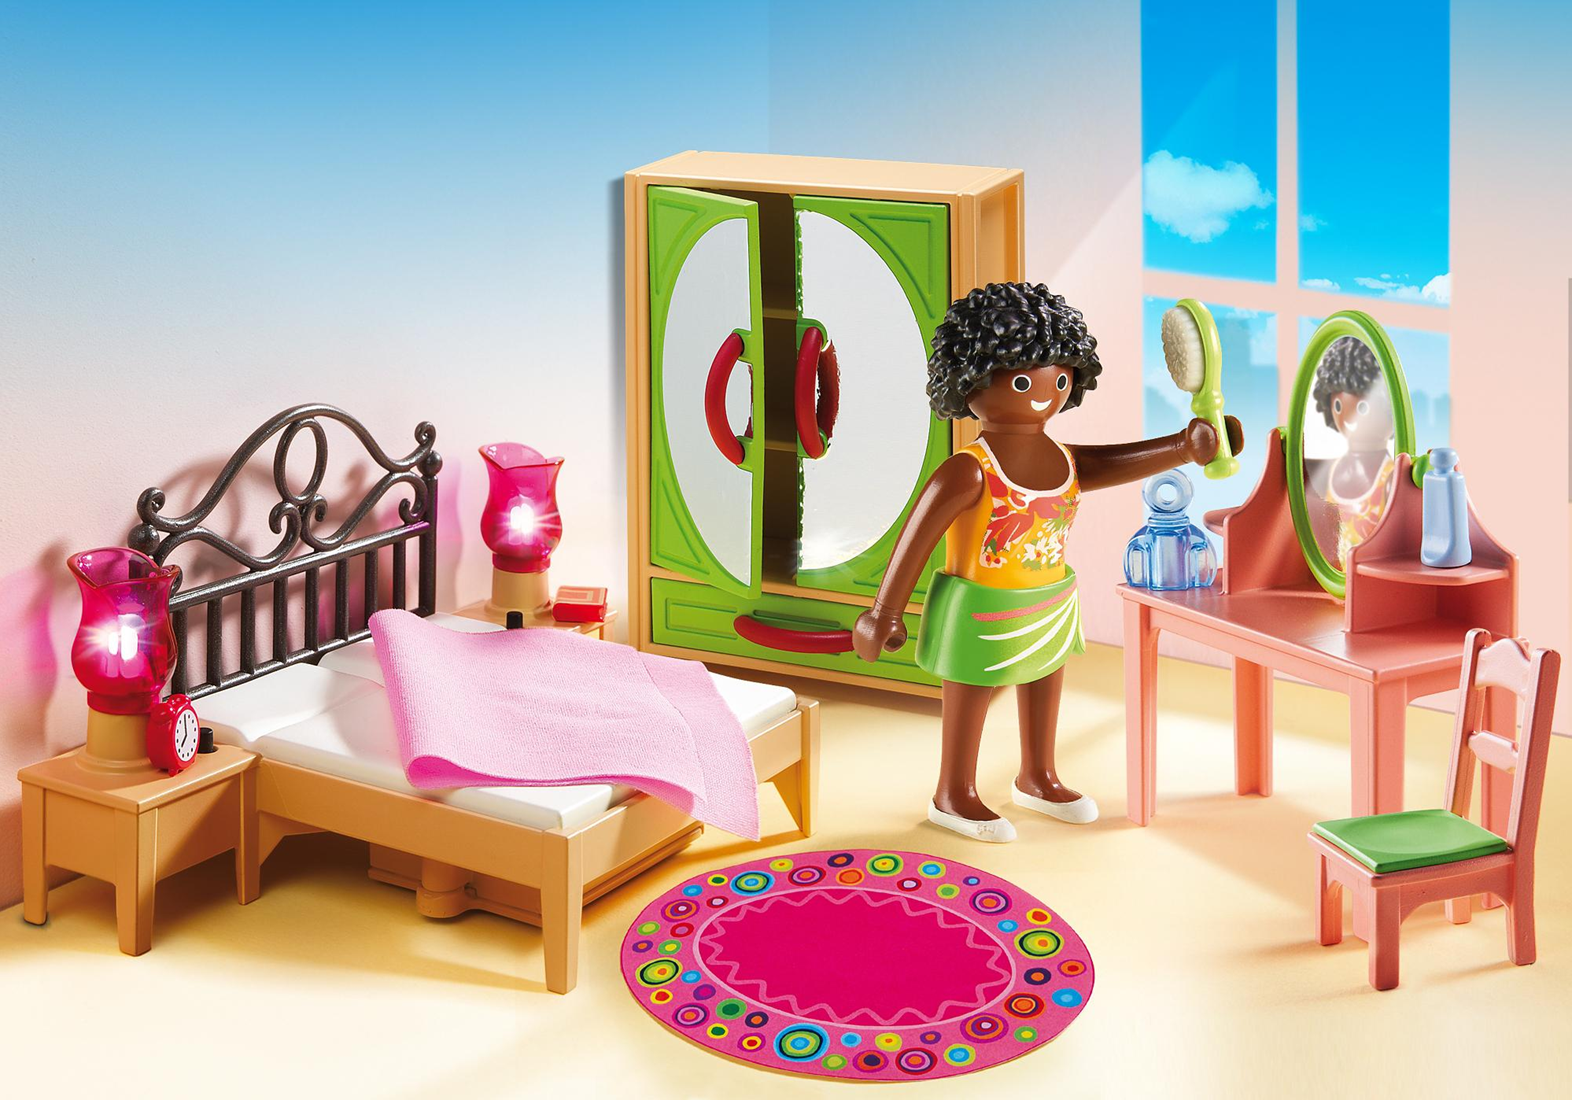 Playmobil Dollhouse - Slaapkamer met kaptafel 5309 bij Planet Happy